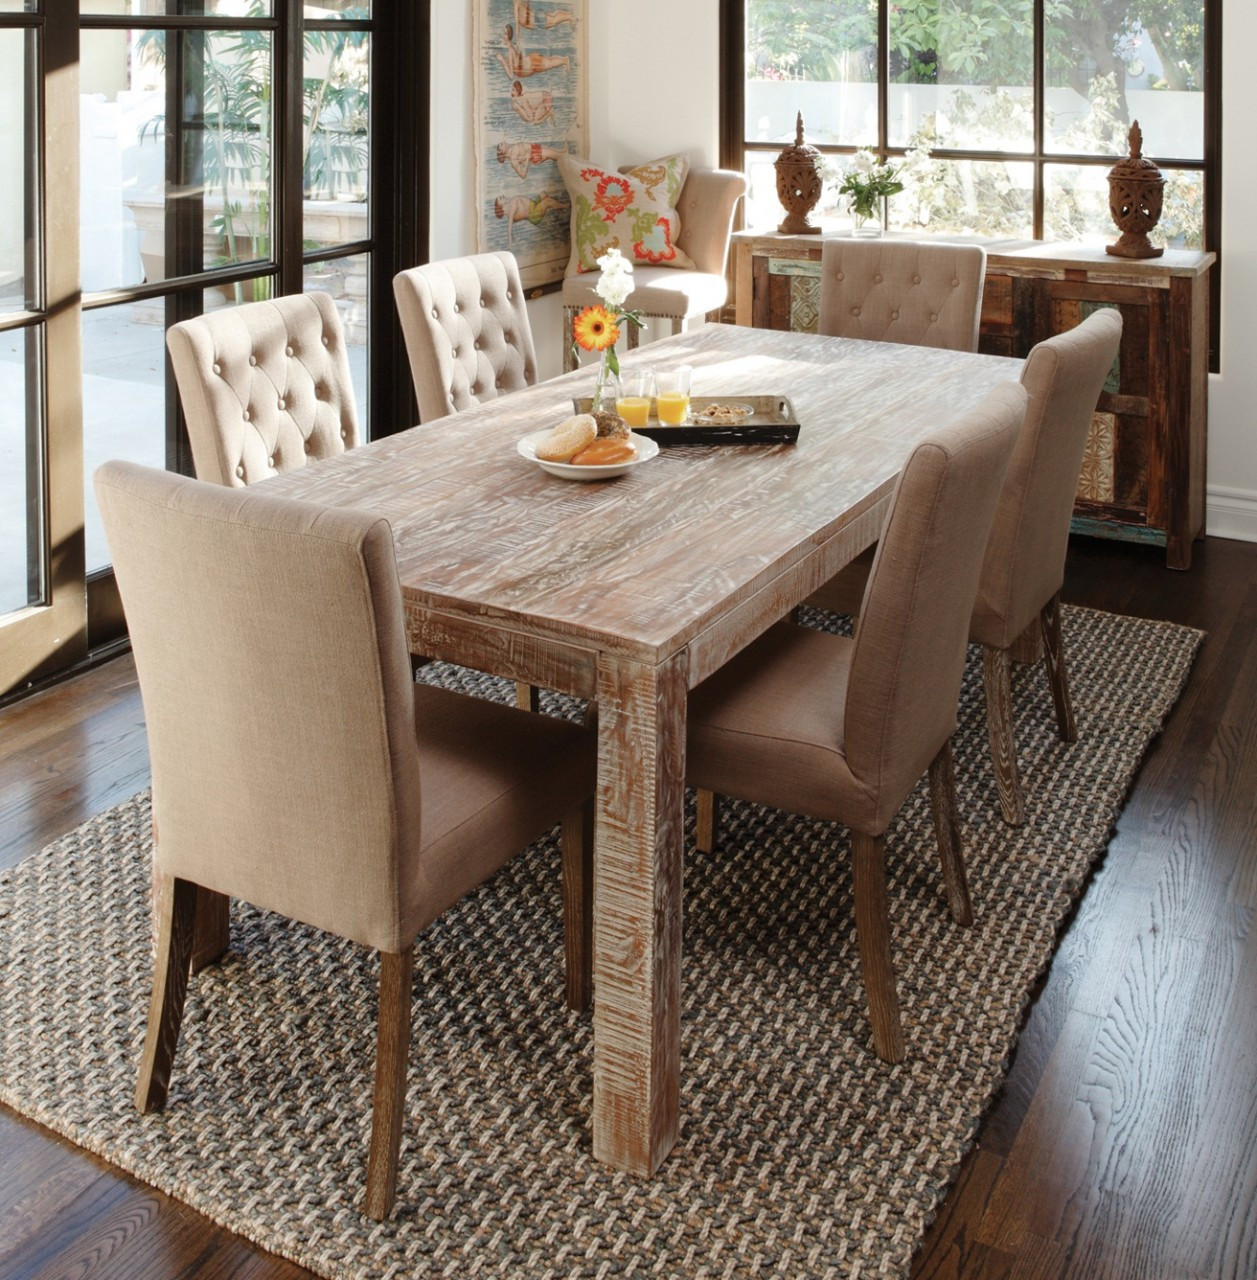 Hampton farmhouse dining room table 72 zin home for Fotos de comedores